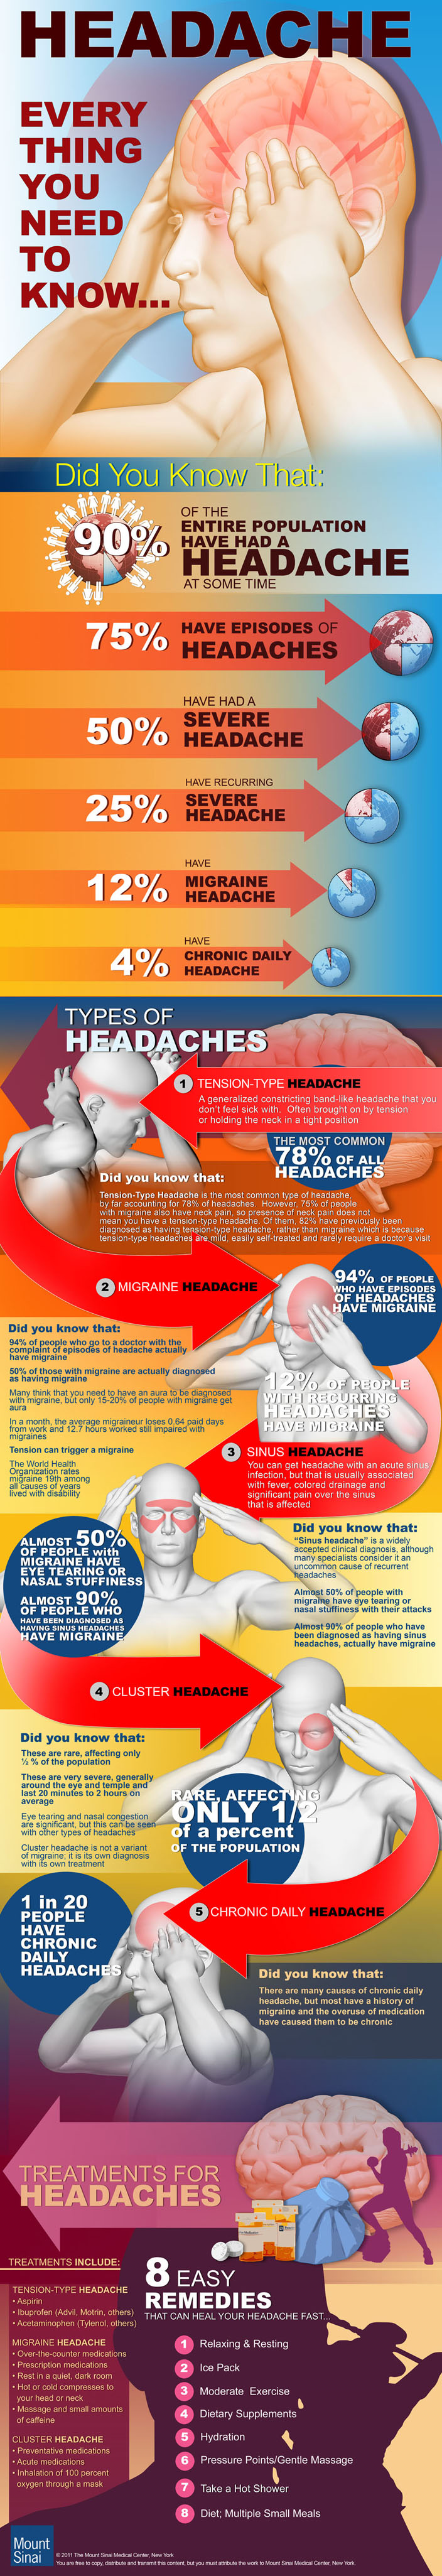 headache-infographic